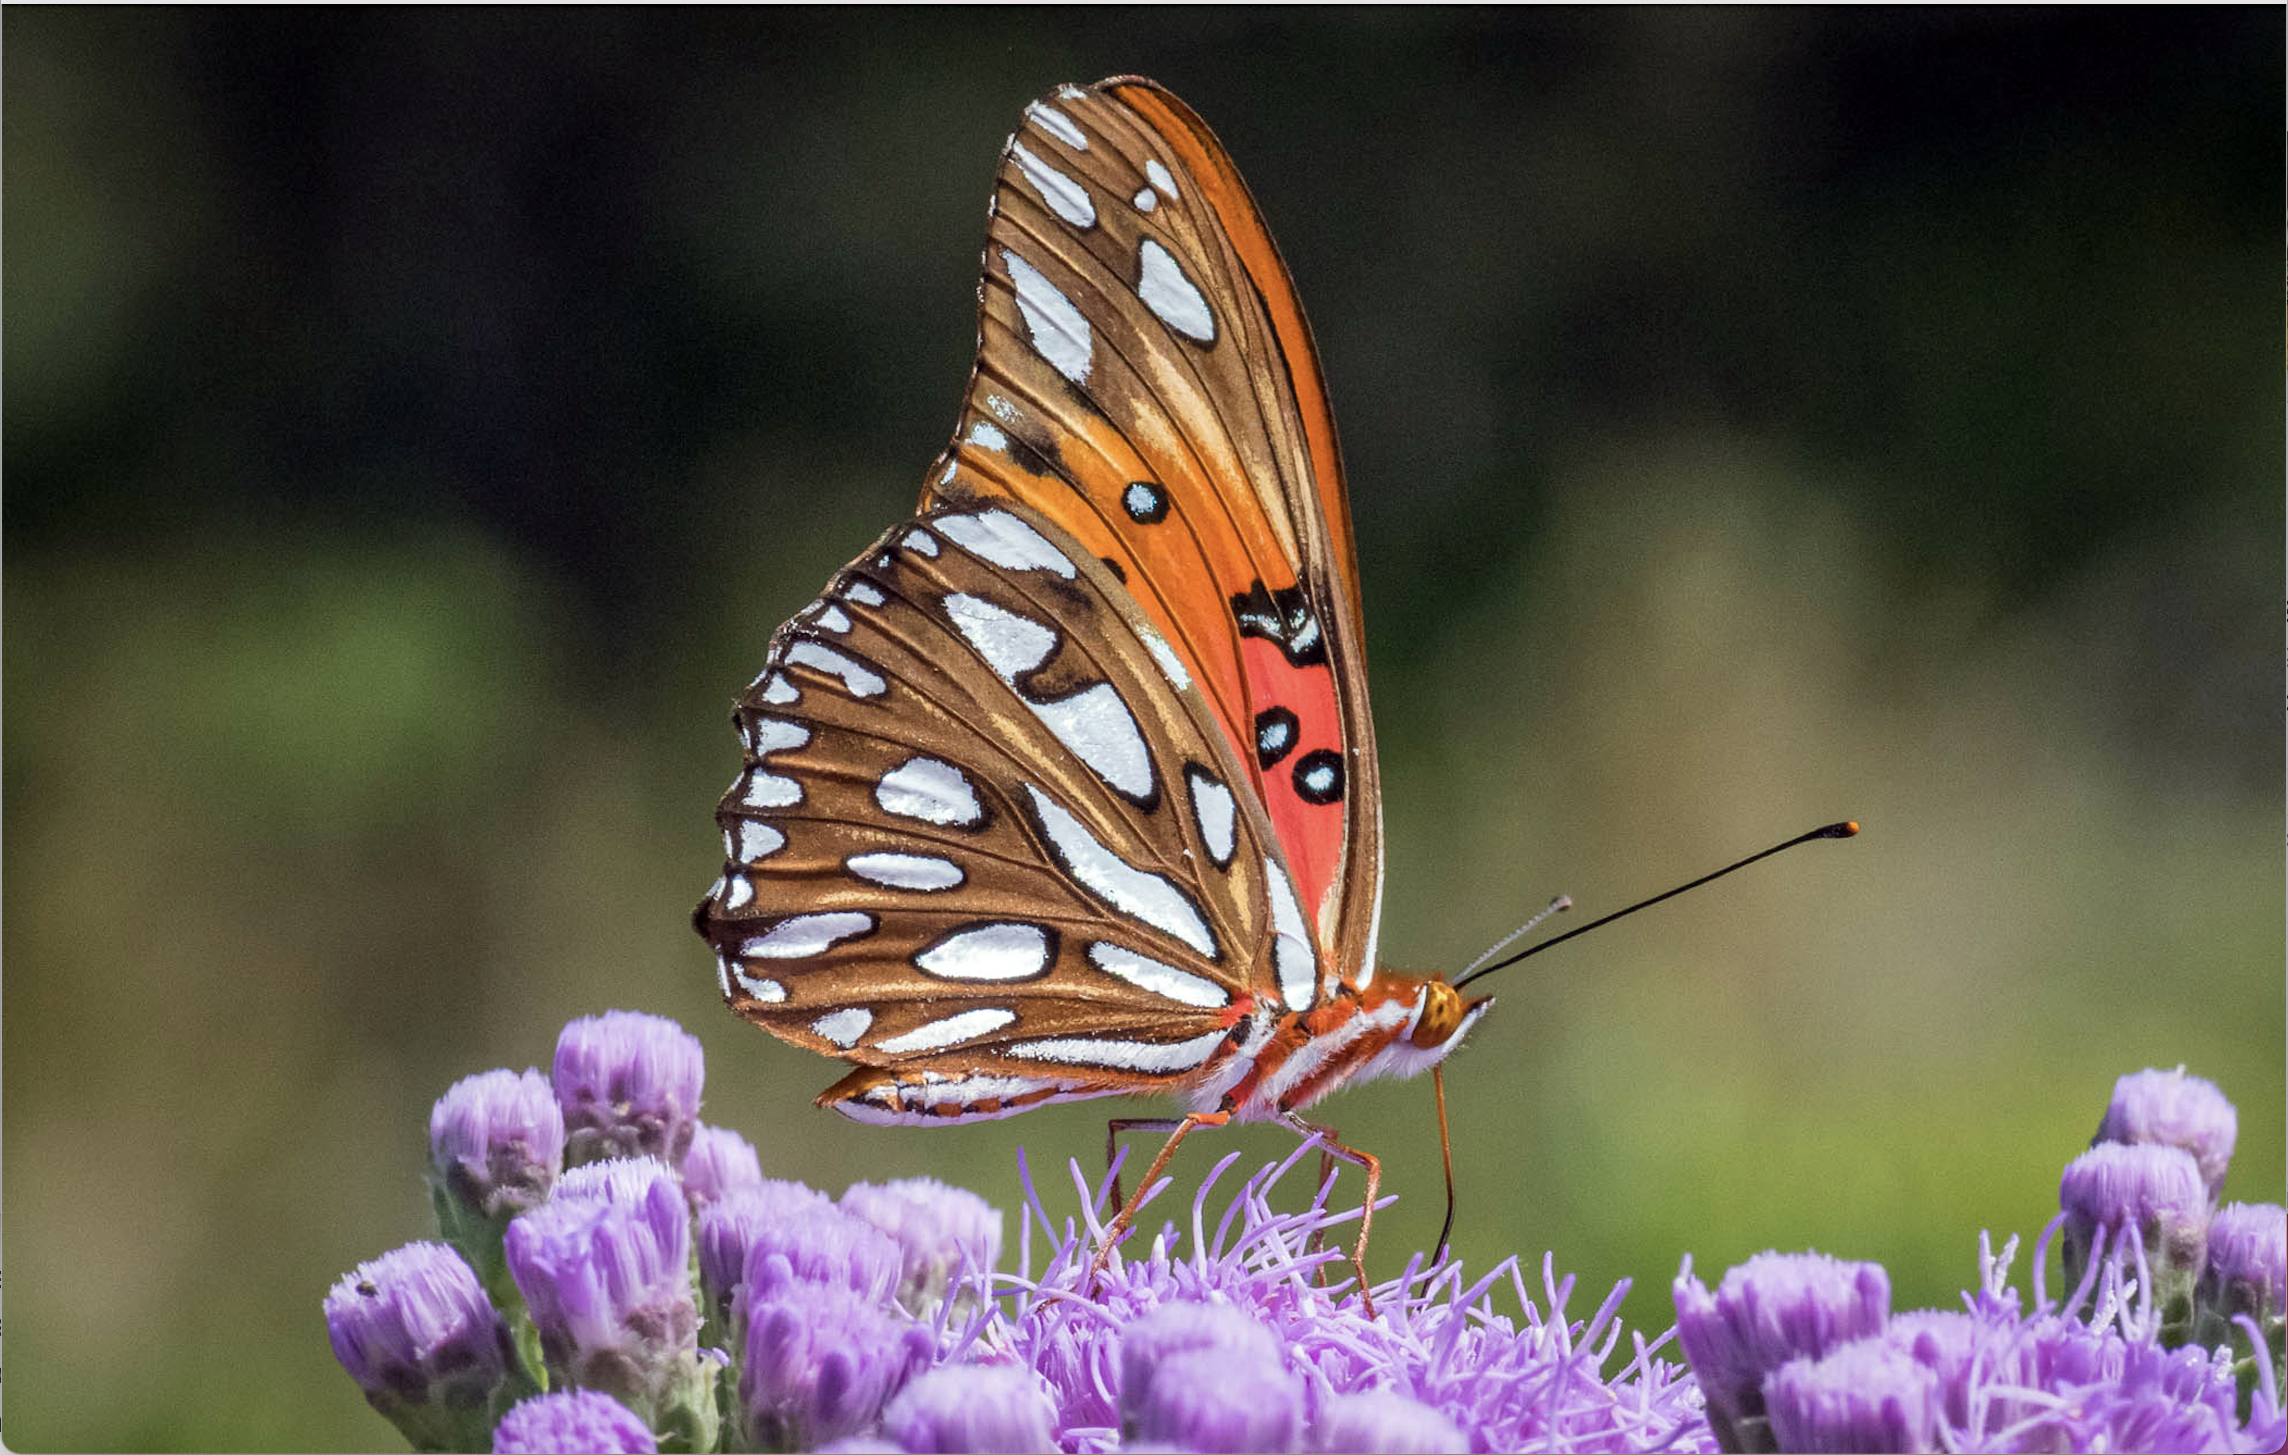 Pollinators Are in Trouble. Here's How Transforming Your Lawn Into a Native Wildflower Habitat Can Help